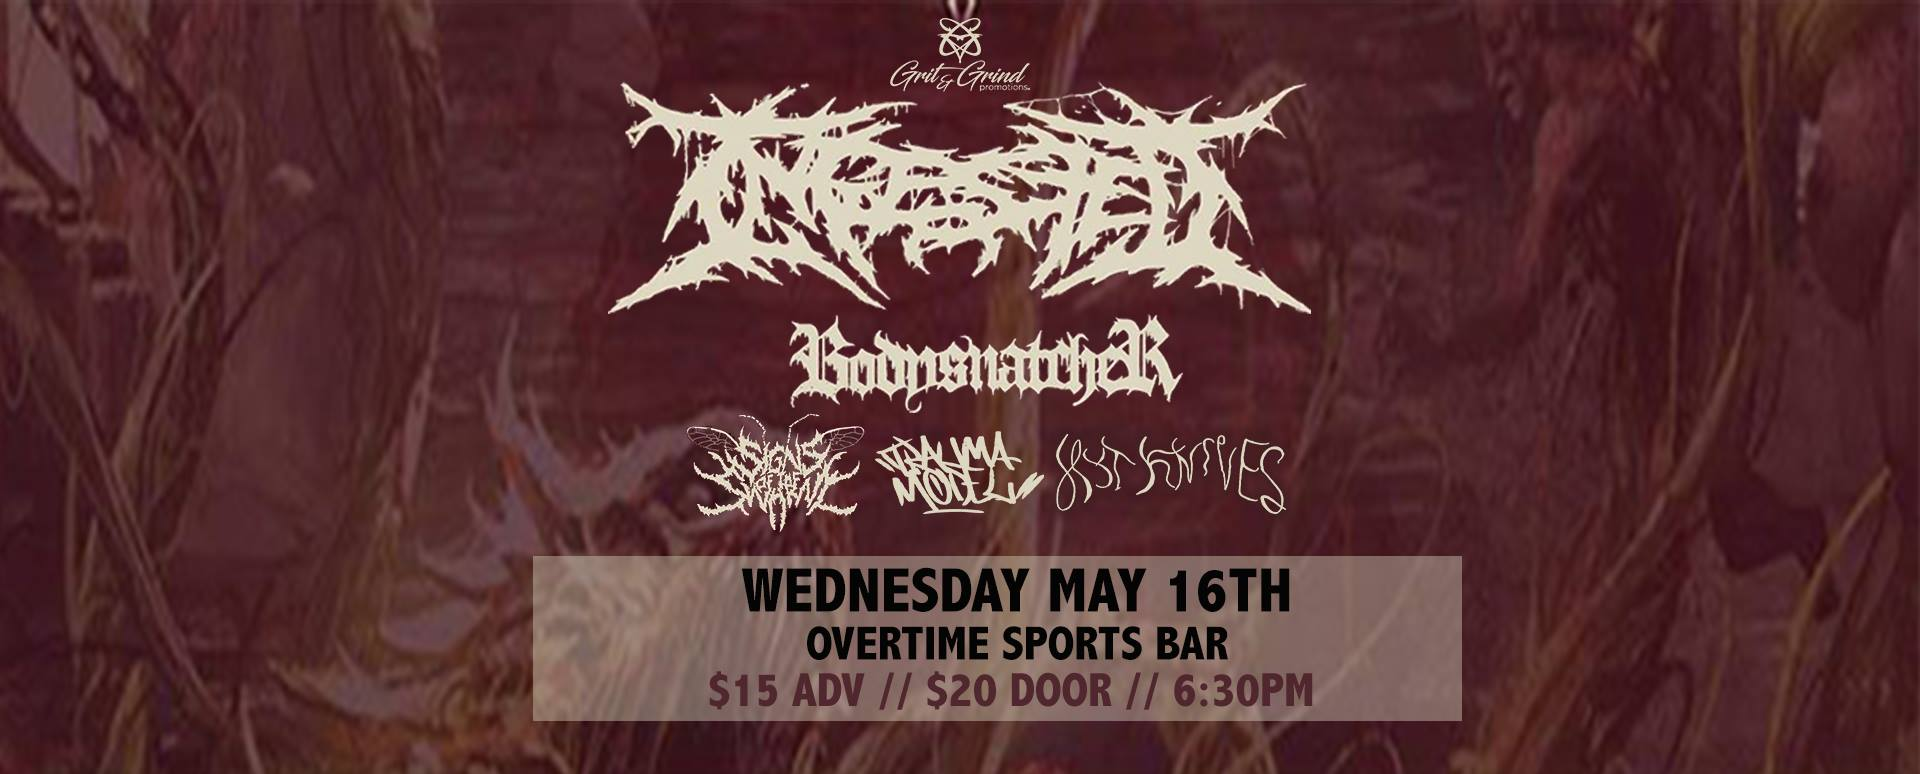 Ingested, Signs Of The Swarm, Bodysnatcher @ Overtime Sports Bar